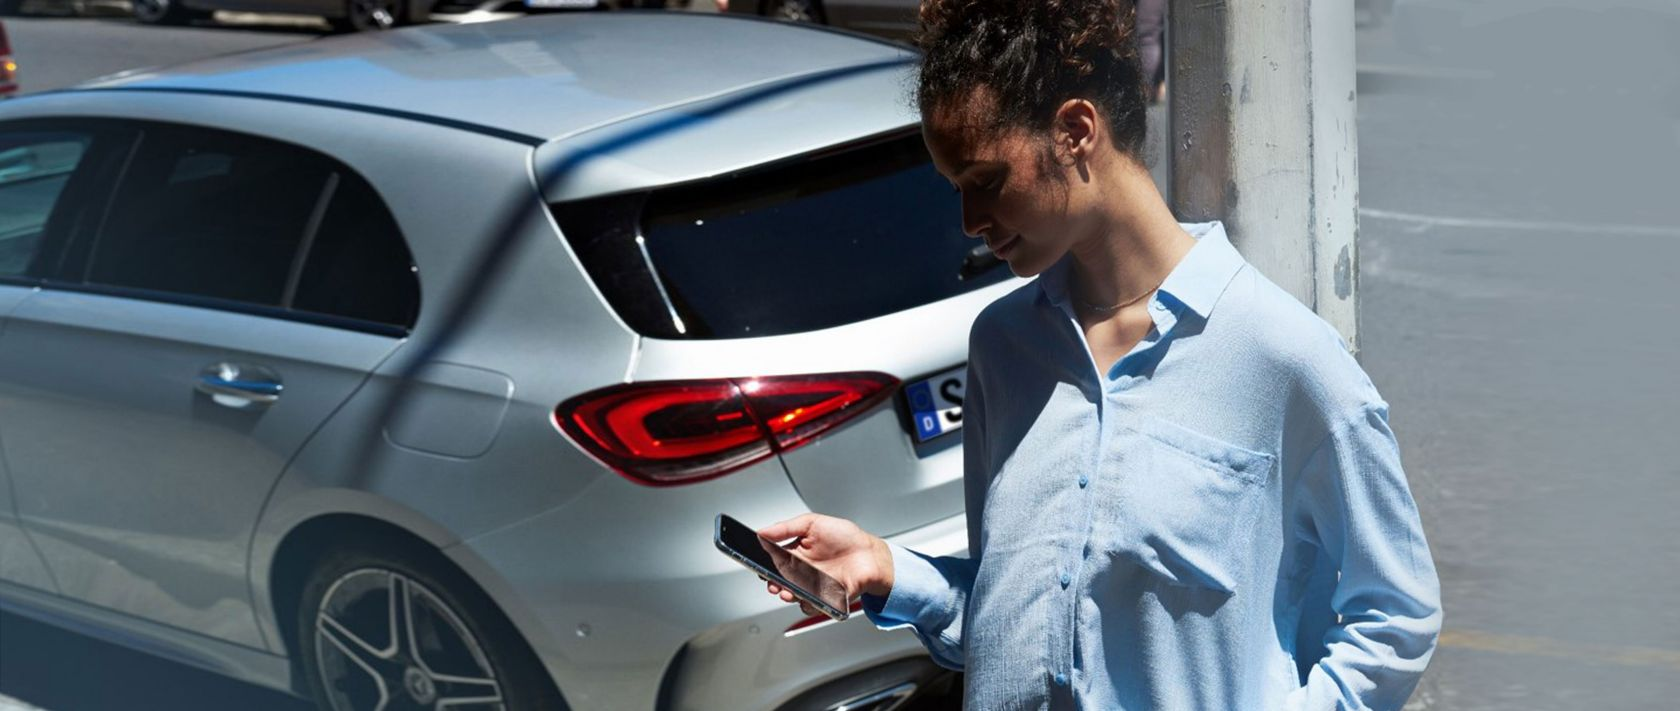 You will find all necessary information regarding your Mercedes-Benz on your smartphone.